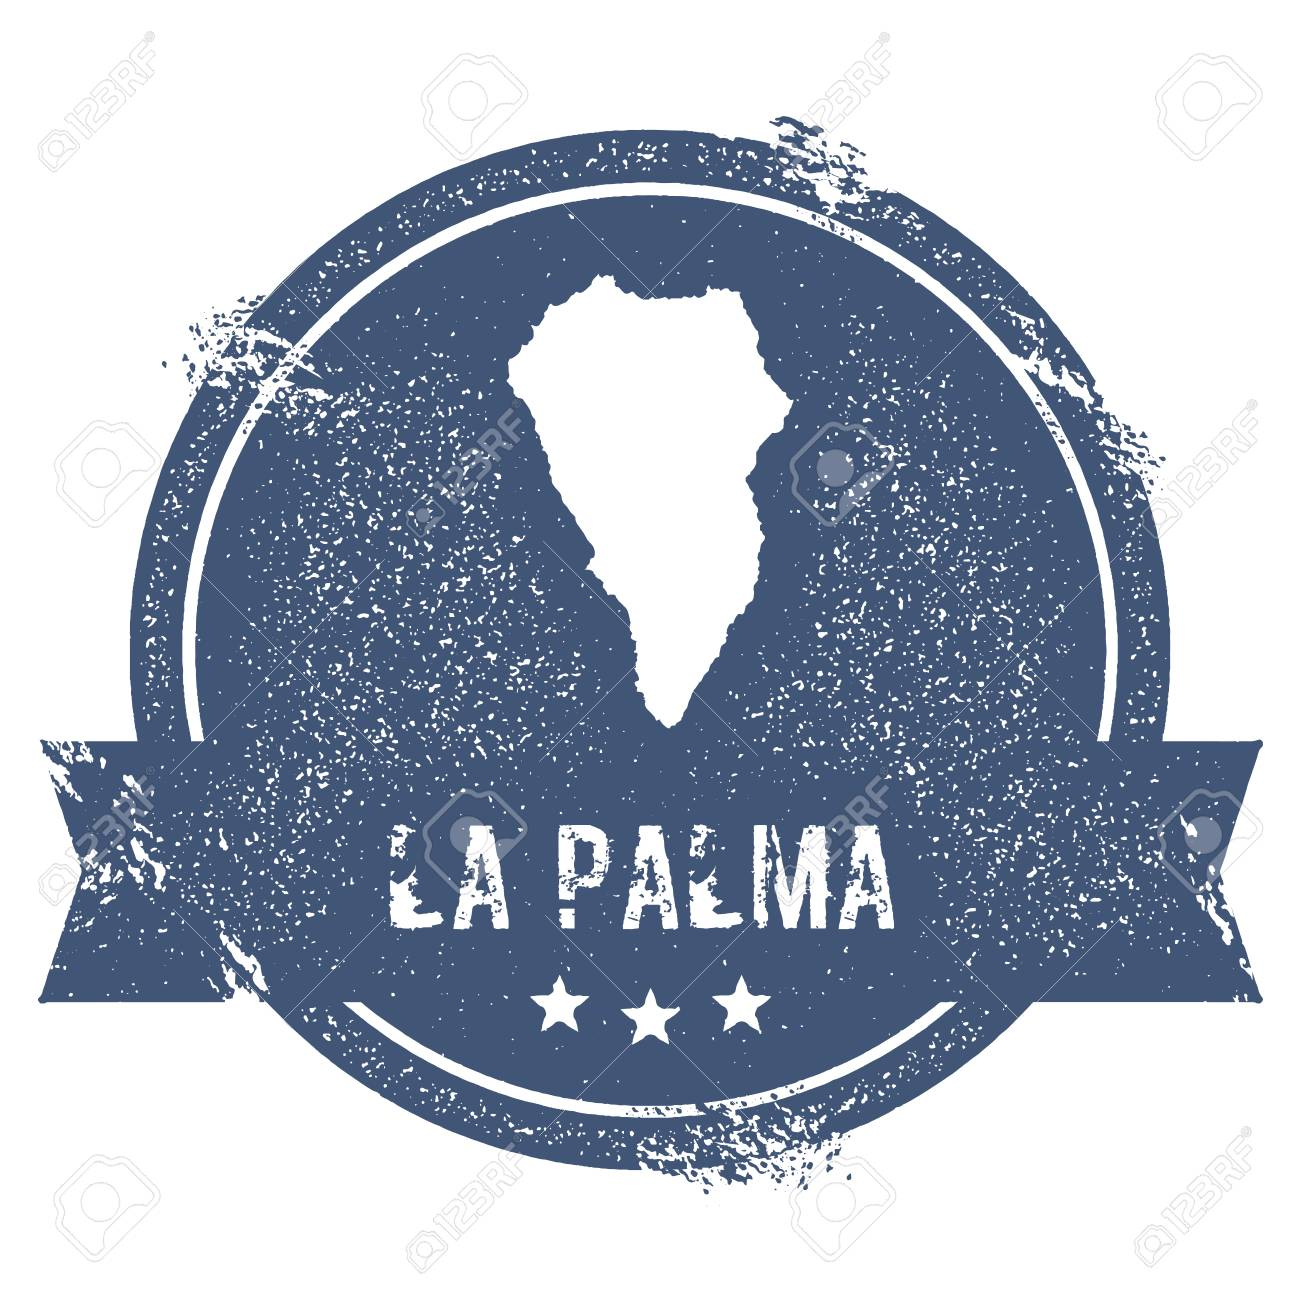 La Palma logo sign. Travel rubber stamp with the name and map..